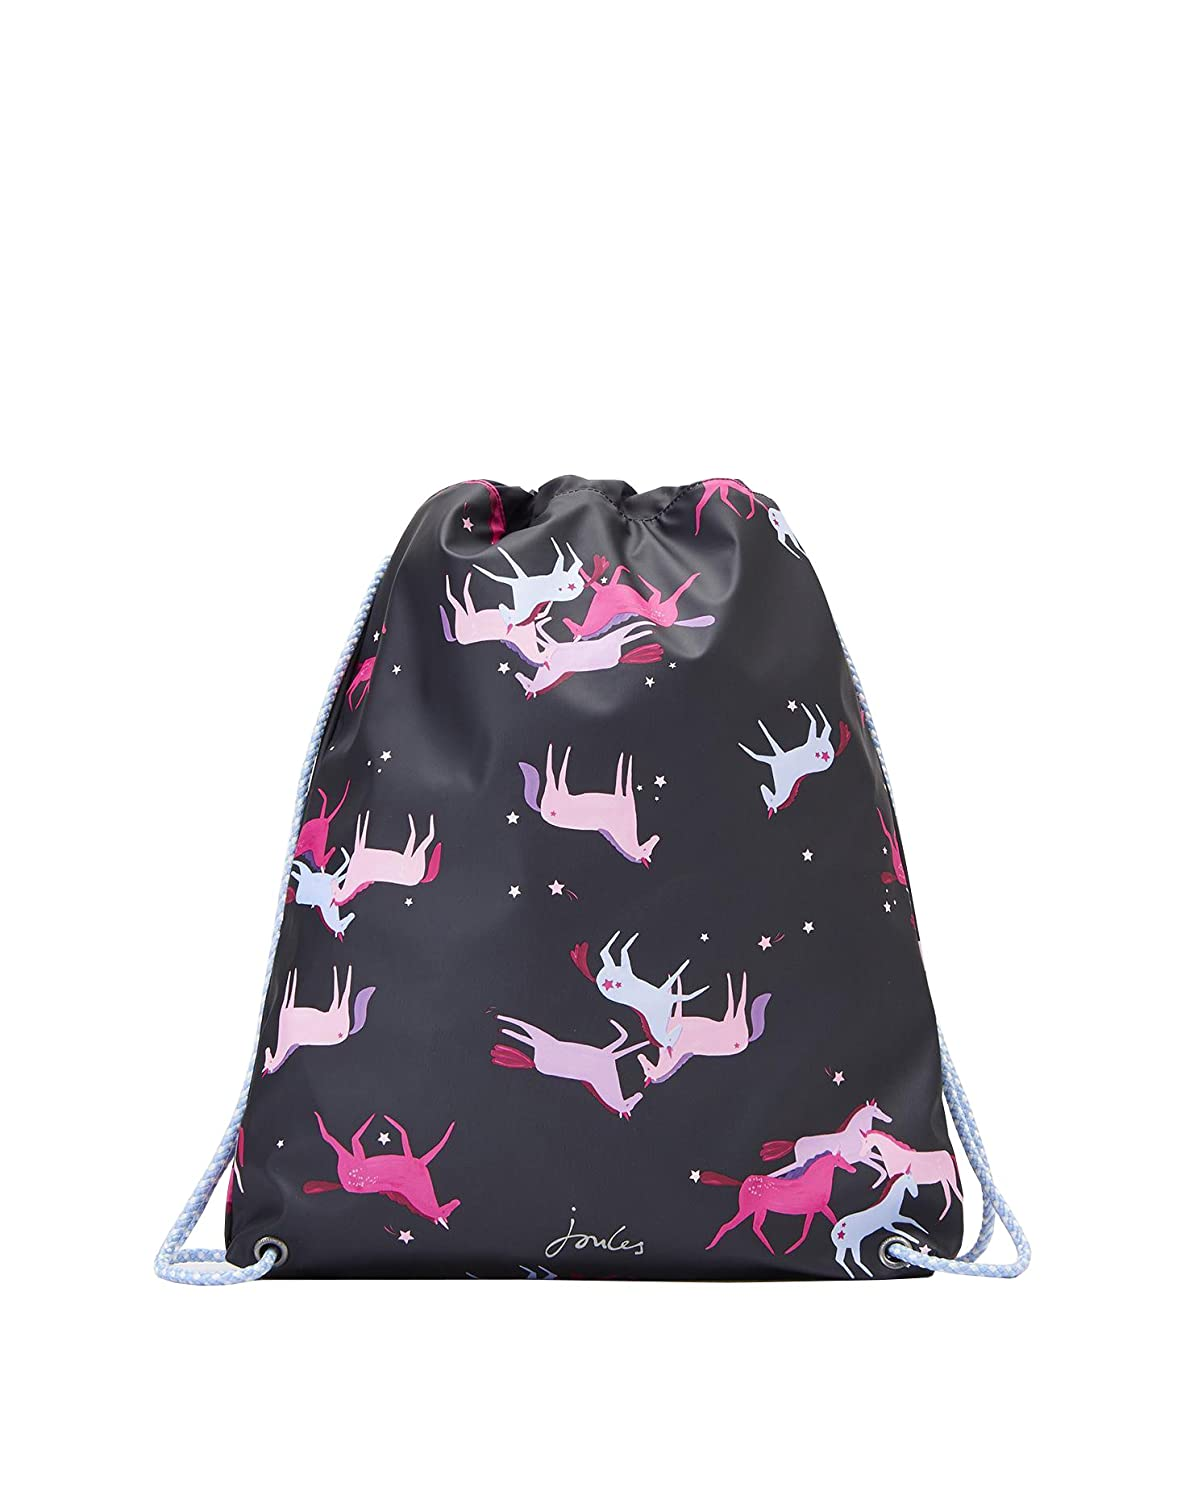 Joules Rubber Drawstring Bag - Navy Magic Unicorn